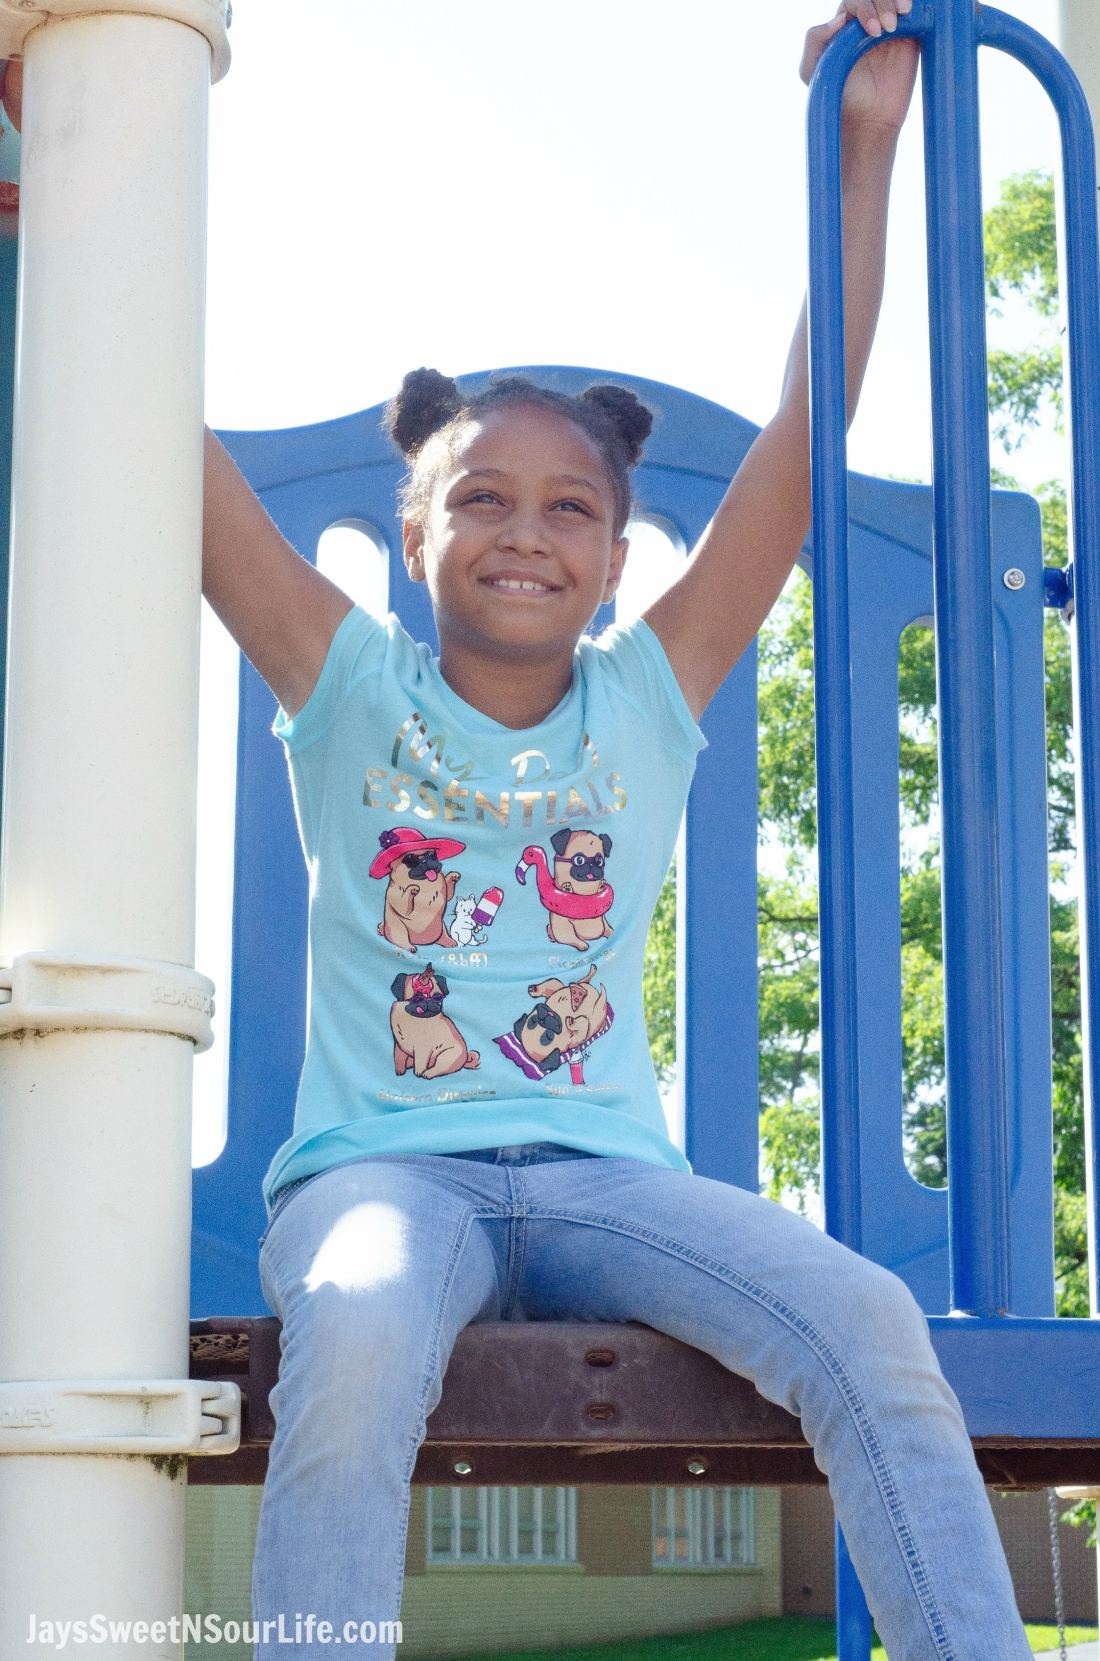 Justice Back To School Shirt Lifestyle Playground. Back To School Must Have Fashion For Tweens via JaysSweetNSourLife.com